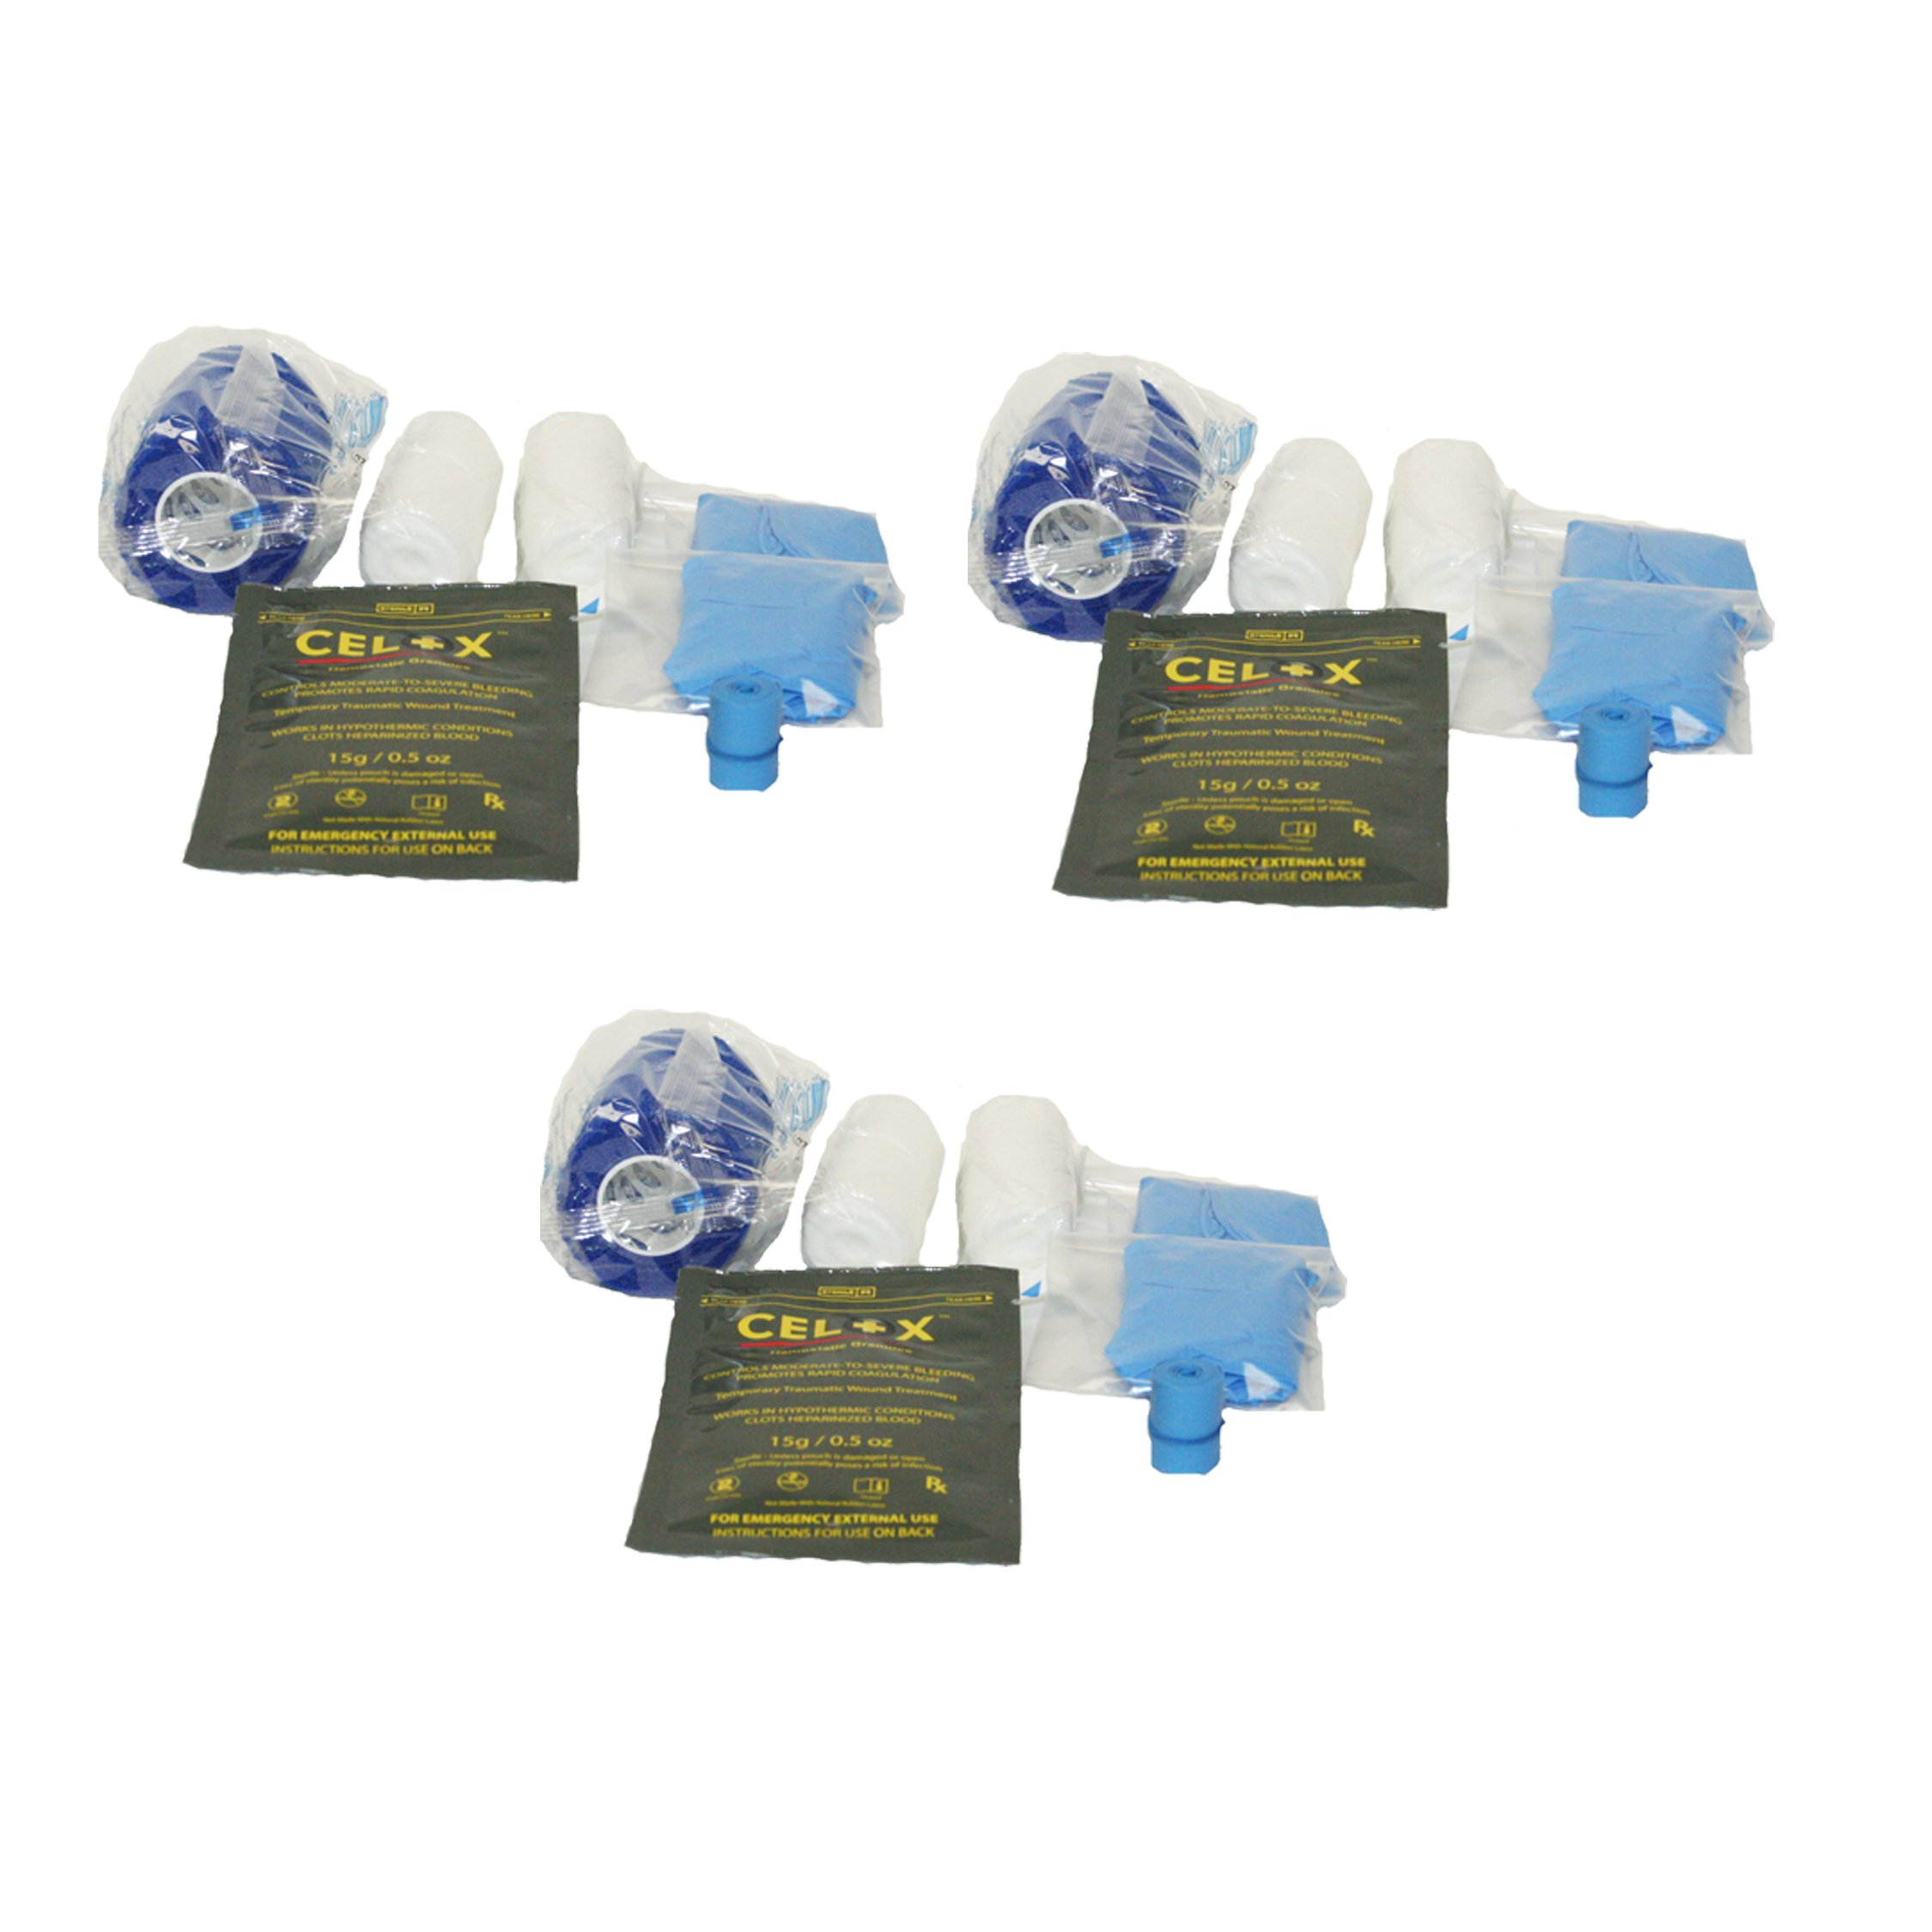 First Voice TS-ASK03 Plastic Deluxe Active Shooter Trauma Essentials Medical Kit Refill (Pack of 3)